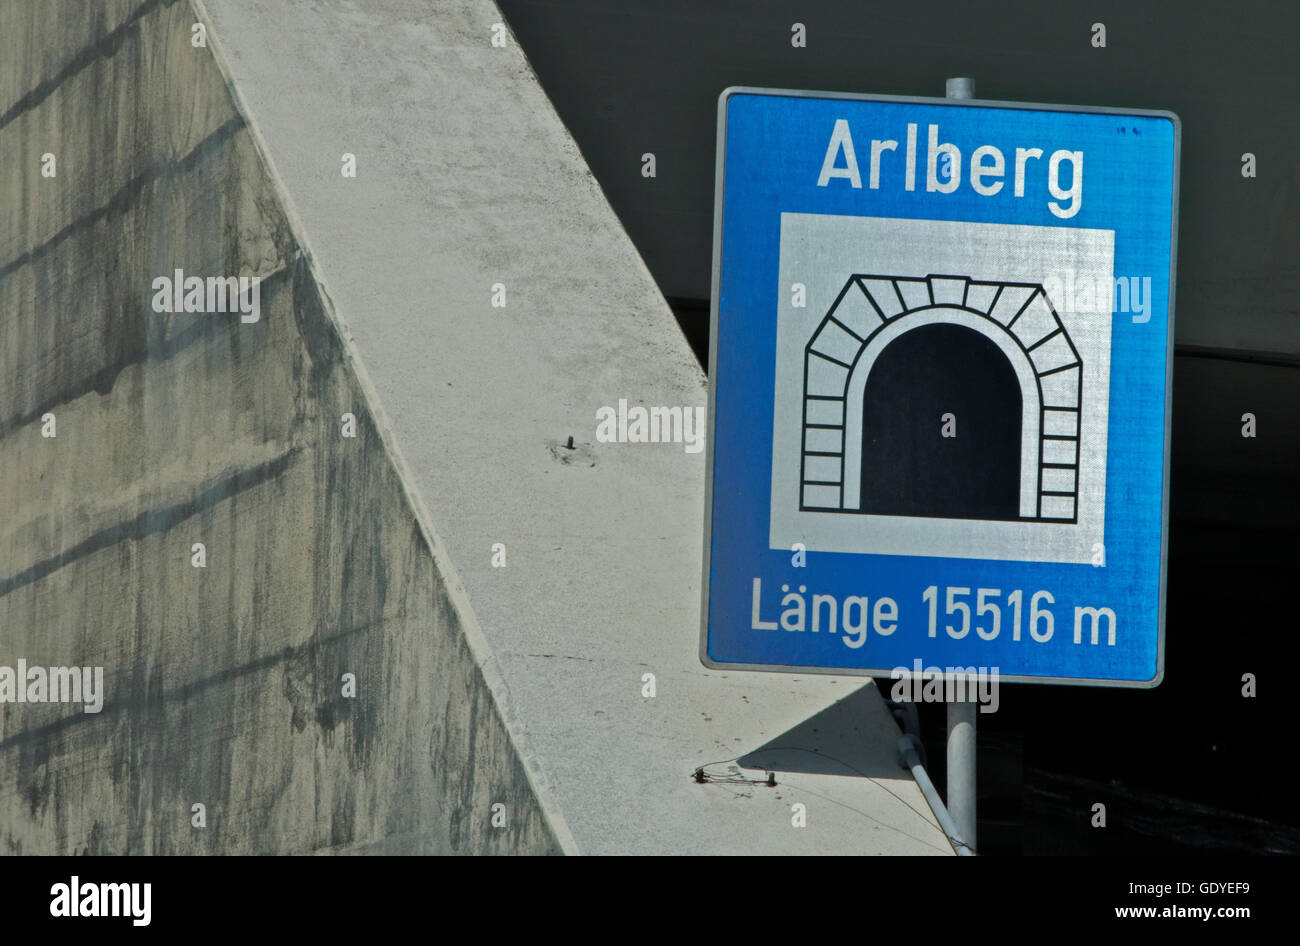 Sign at Entrance to the Arlberg Road Tunnel, Austria - Stock Image